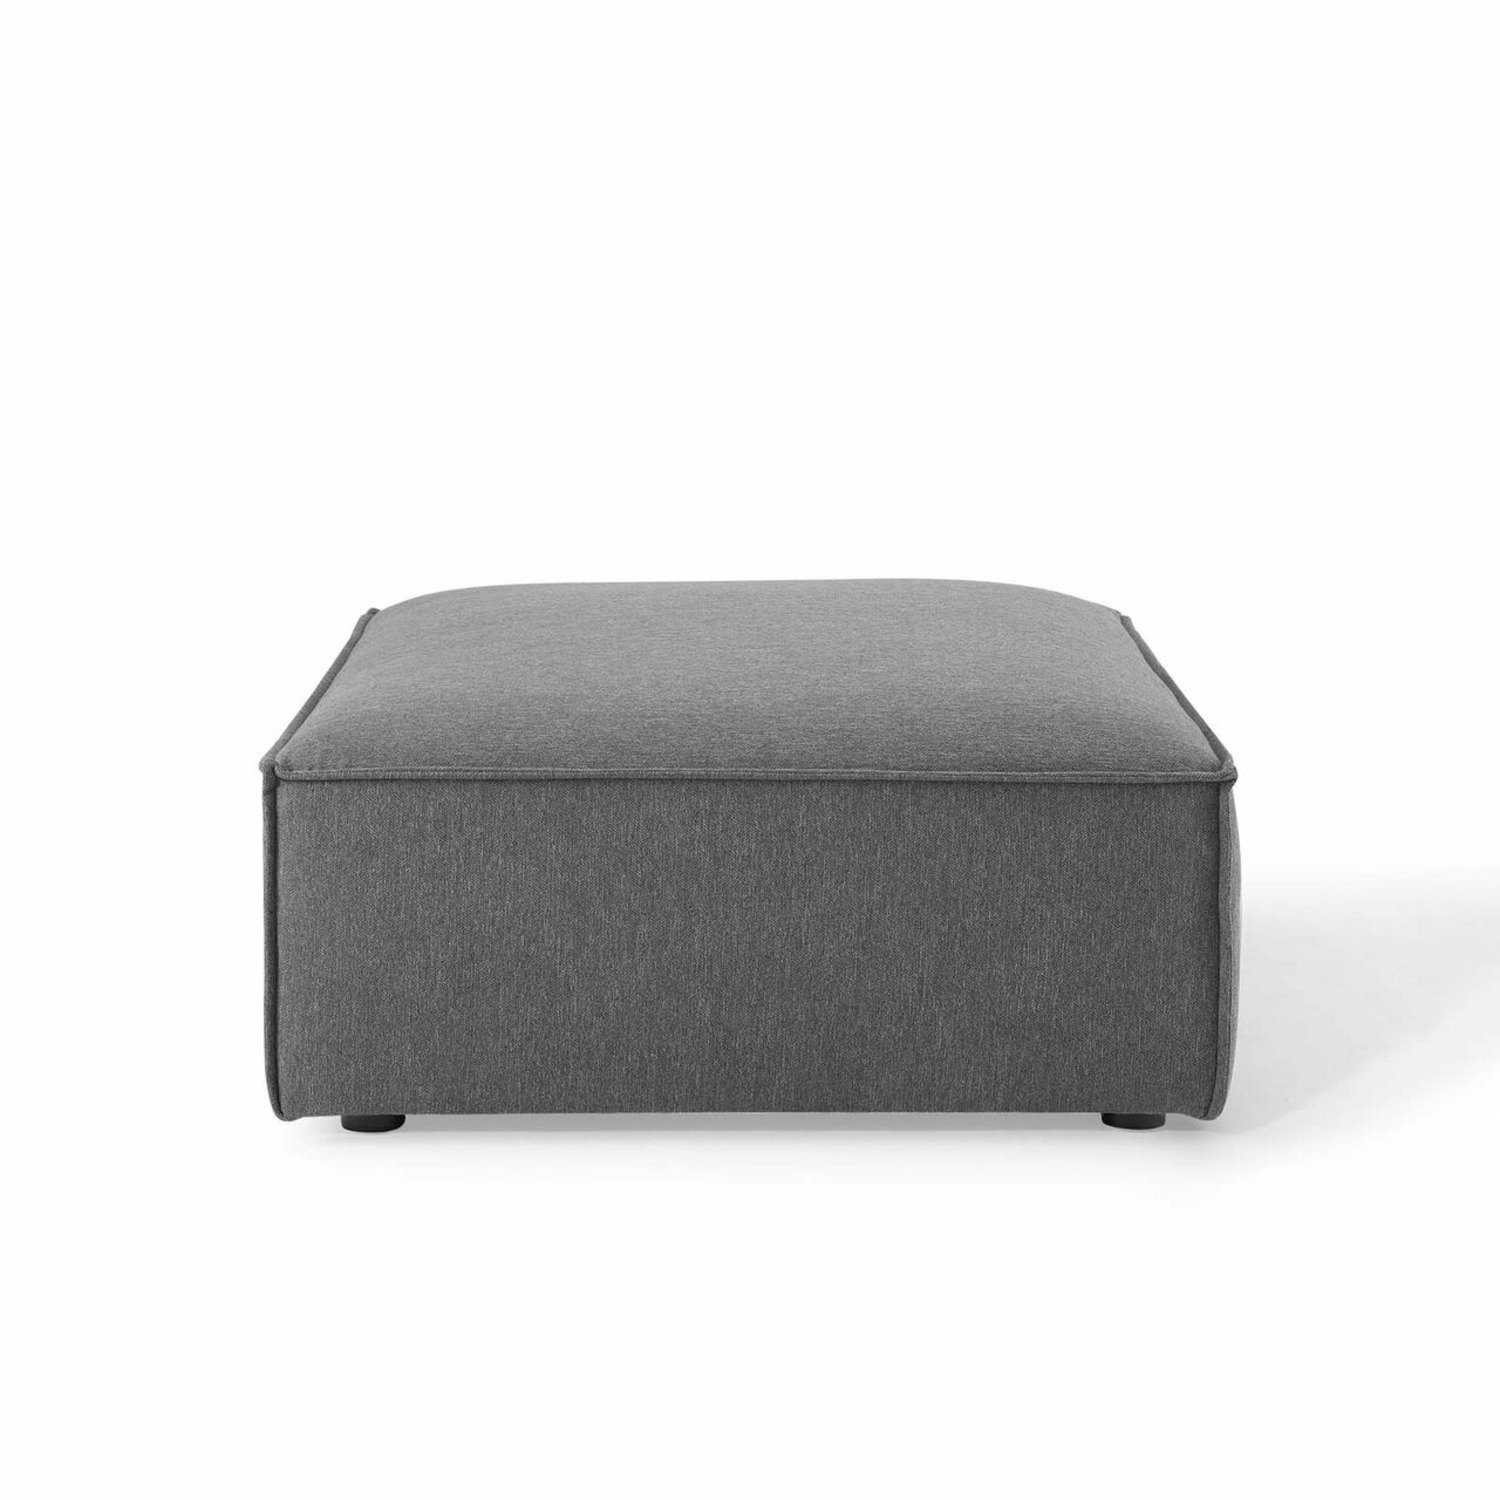 6-Piece Sectional Sofa In Charcoal Upholstery - image-8